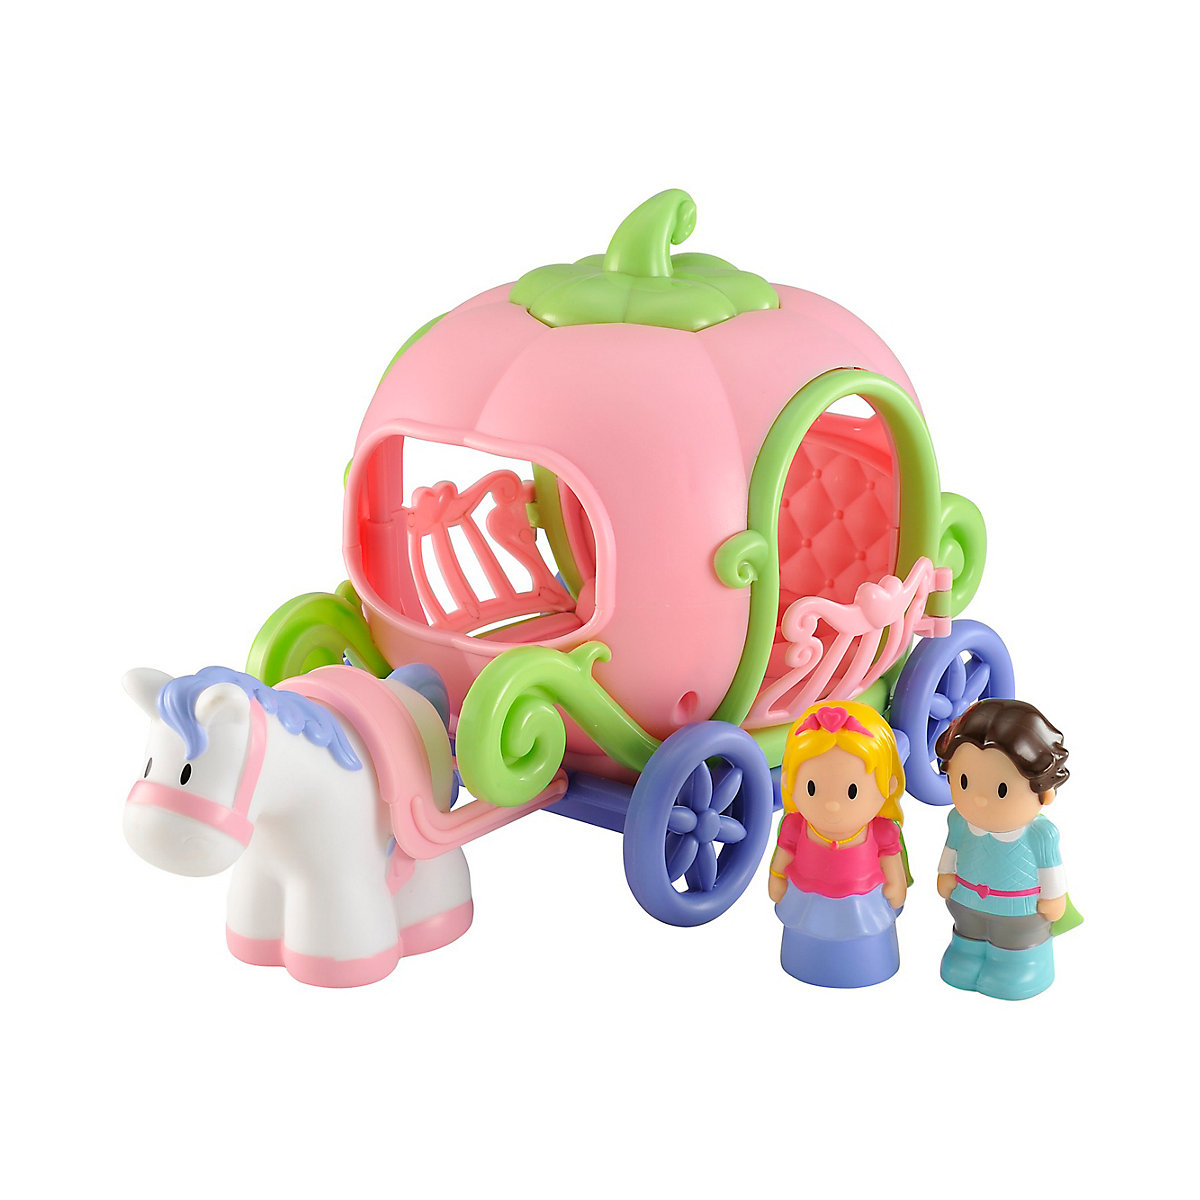 Happyland Fantasy Carriage Toy From 2 years